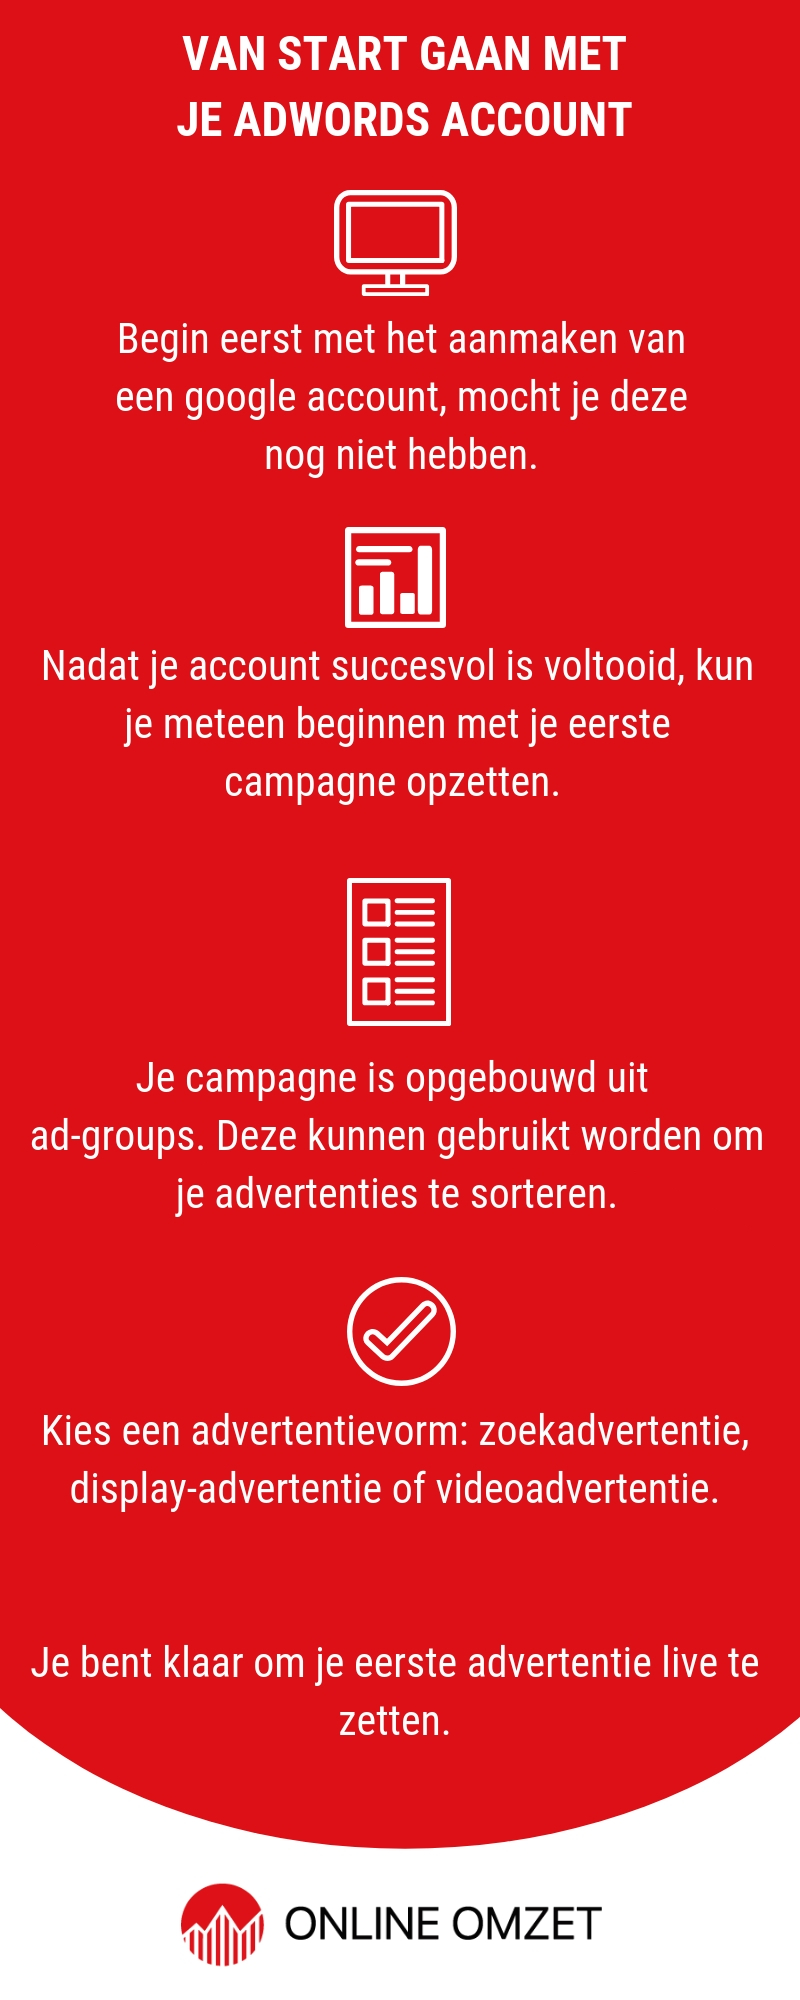 Zo start je met Google Adwords - infographic